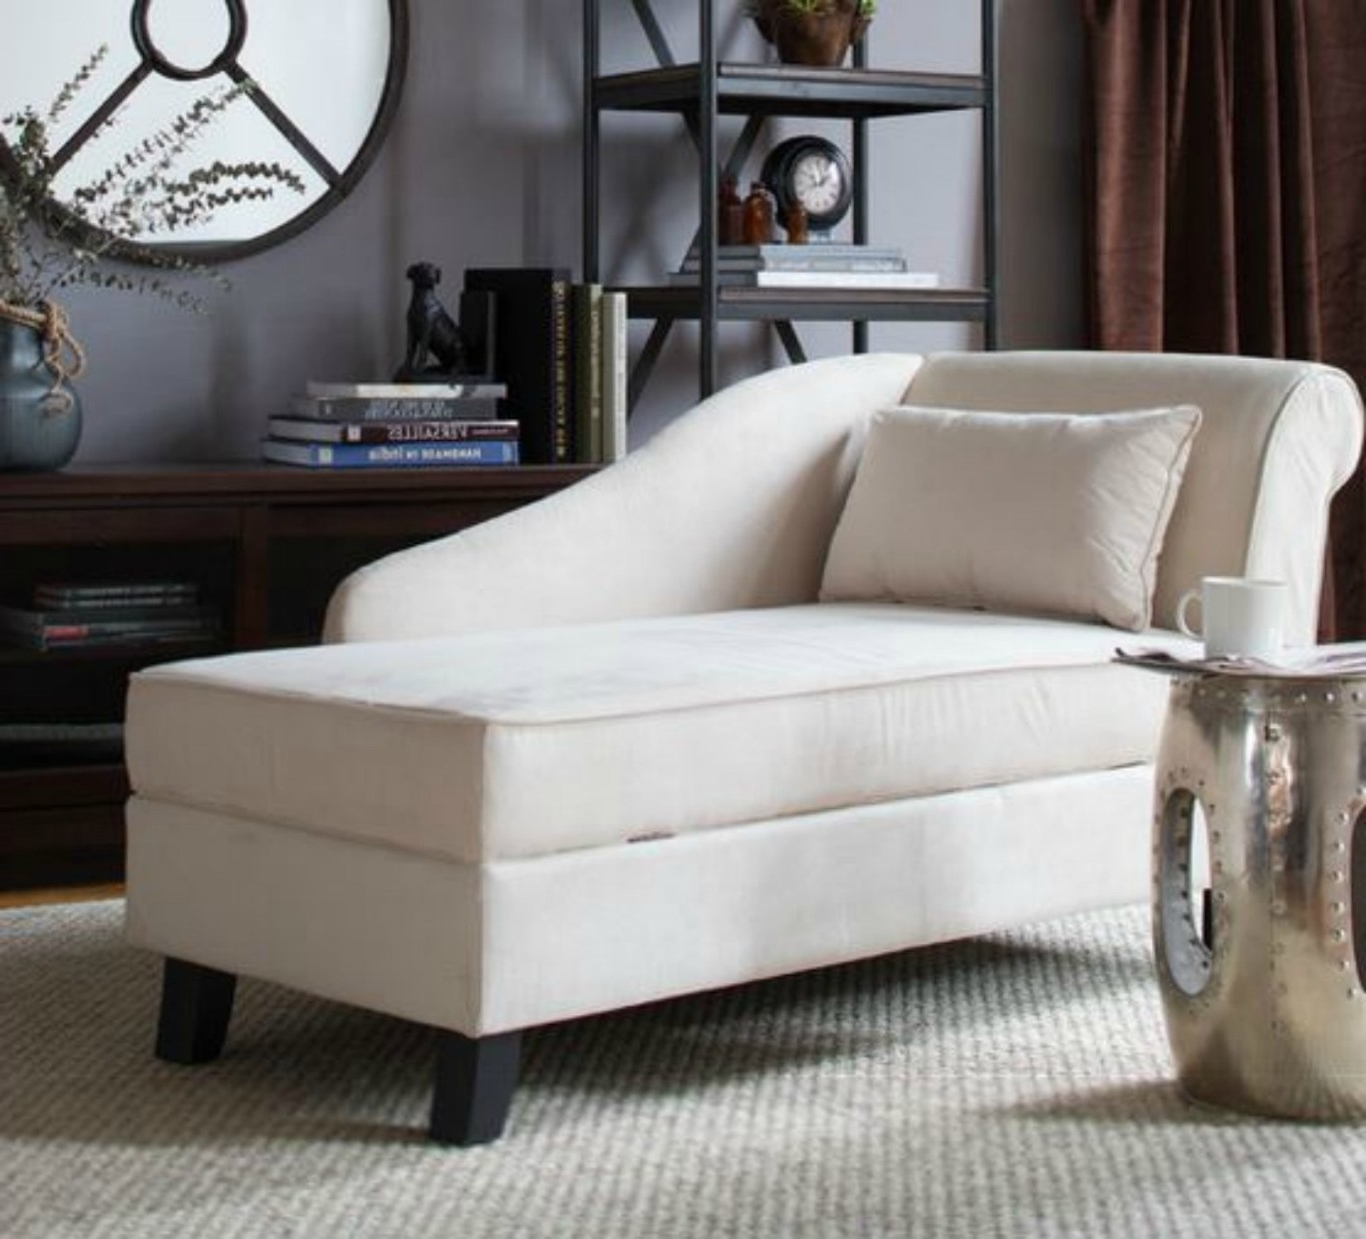 Chaise Lounge Chairs For Bedroom In Recent Lounge Chair For Bedroom (View 6 of 15)